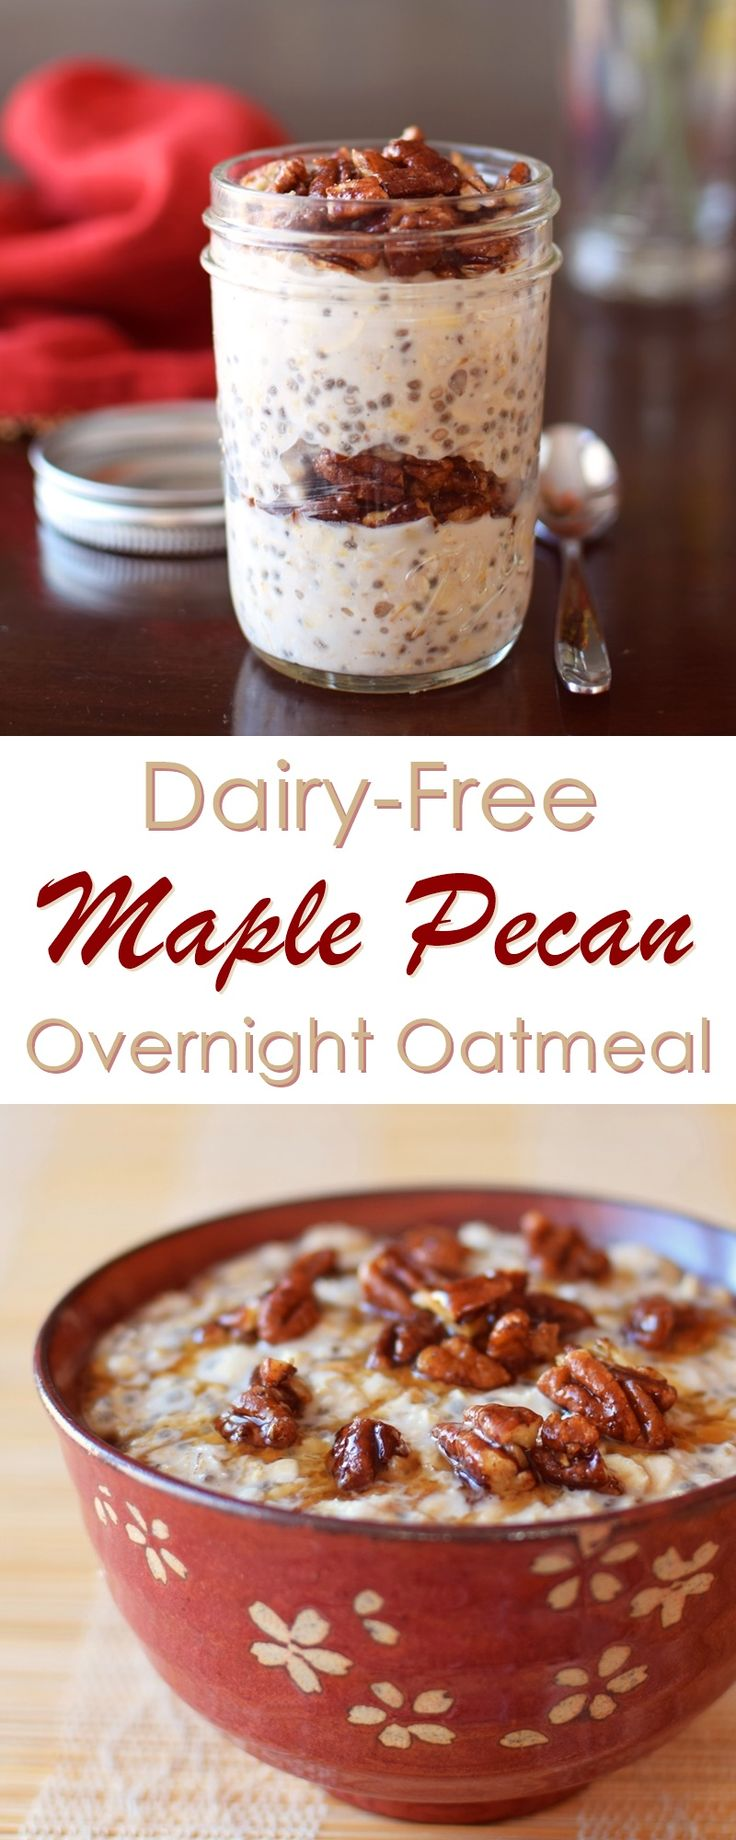 Maple Pecan Overnight Oatmeal Recipe (Dairy-Free!) - this warm, healthy, vegan, gluten-free breakfast is easy to make ahead